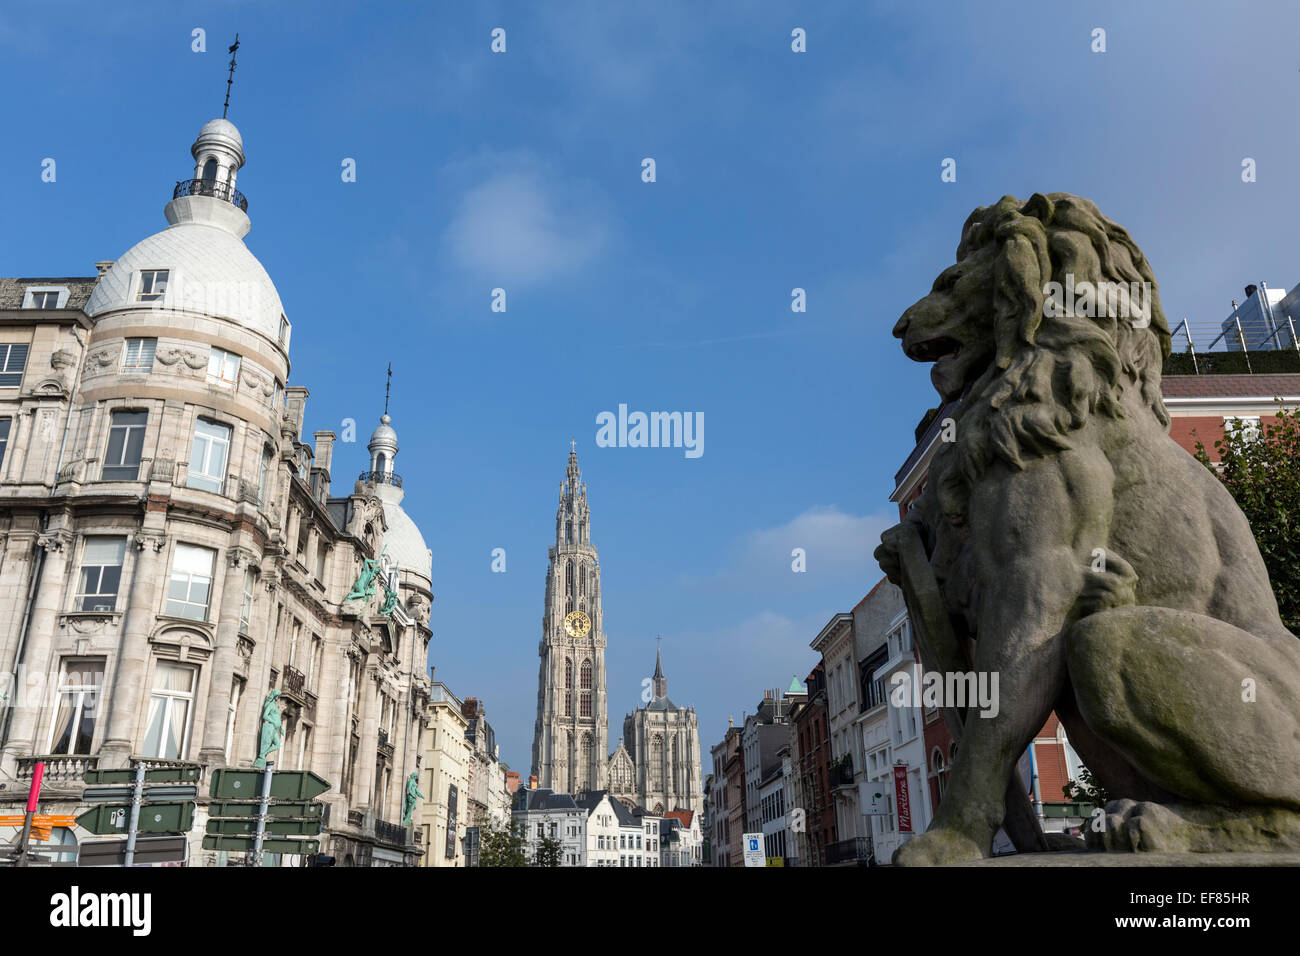 Stone lion sculpture in Ernest van Dijckkaai street and the Cathedral of Our Lady Antwerp, - Stock Image